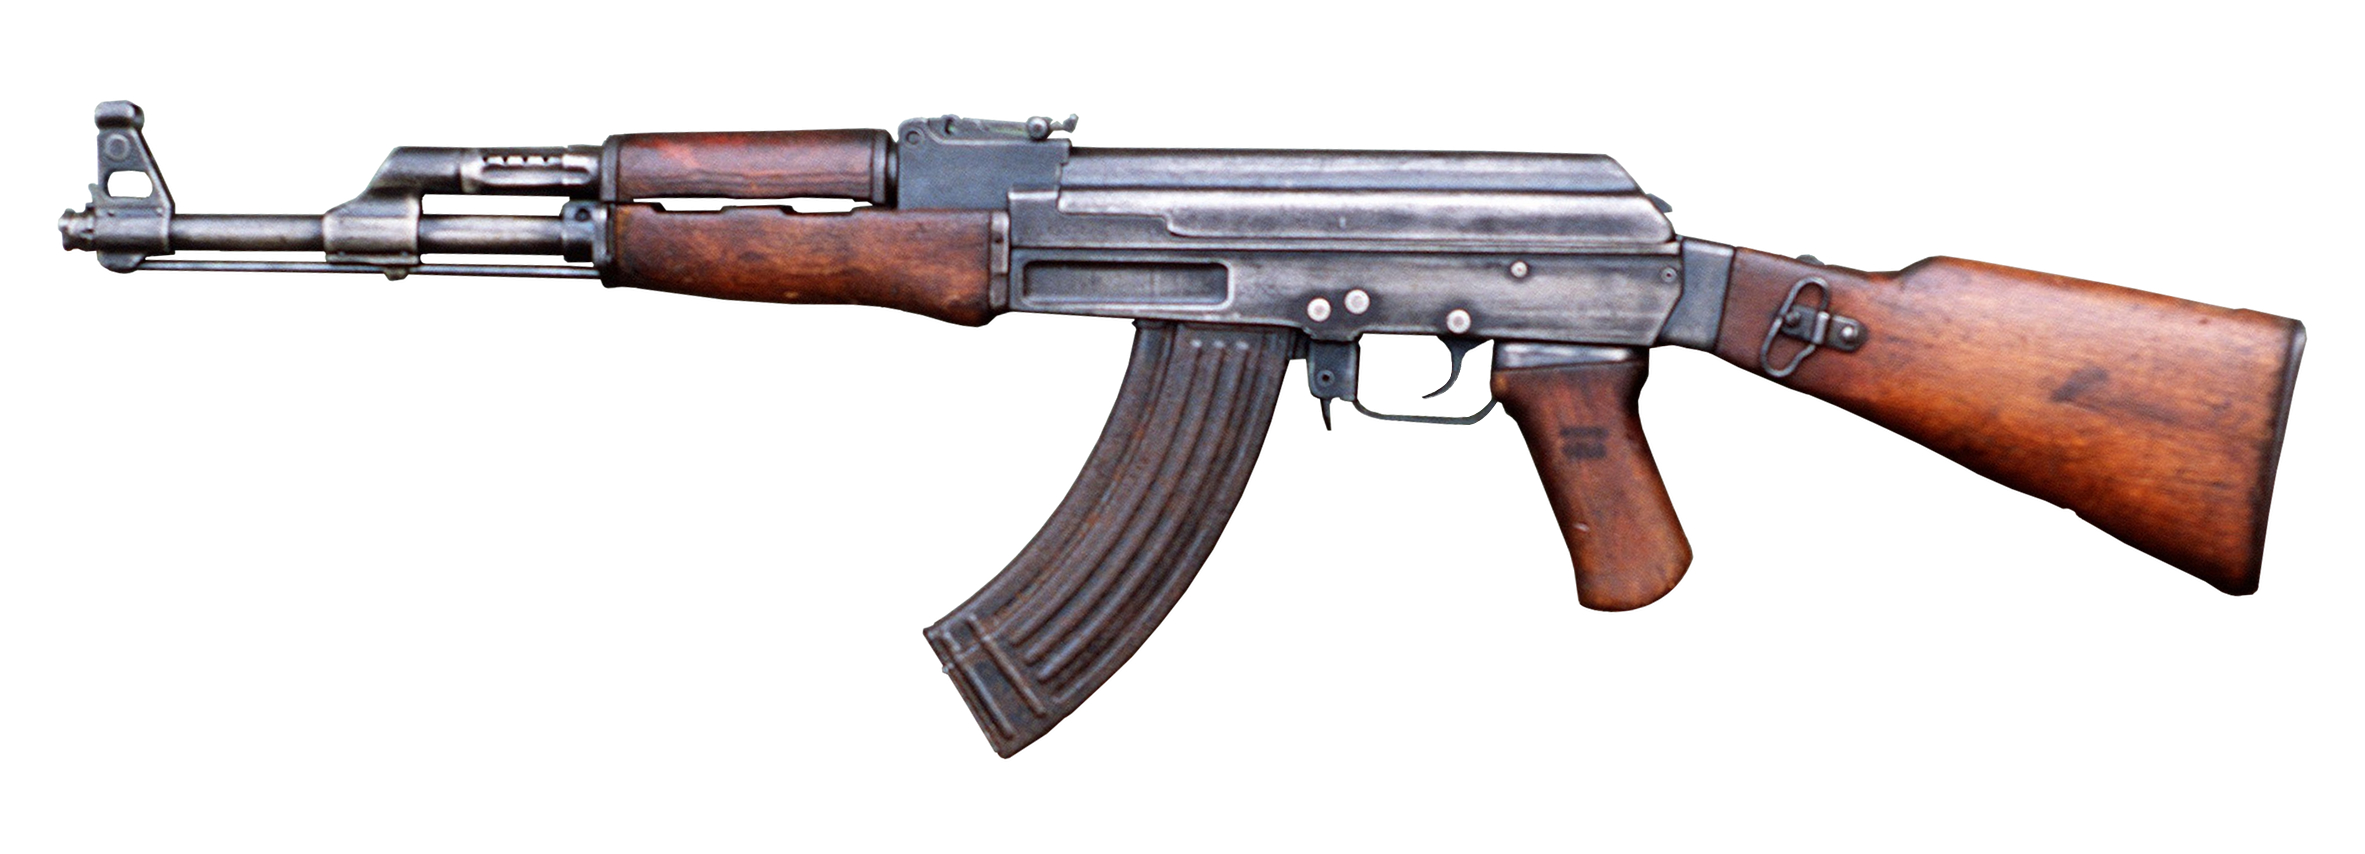 http://upload.wikimedia.org/wikipedia/commons/5/57/AK-47_type_II_Part_DM-ST-89-01131.jpg